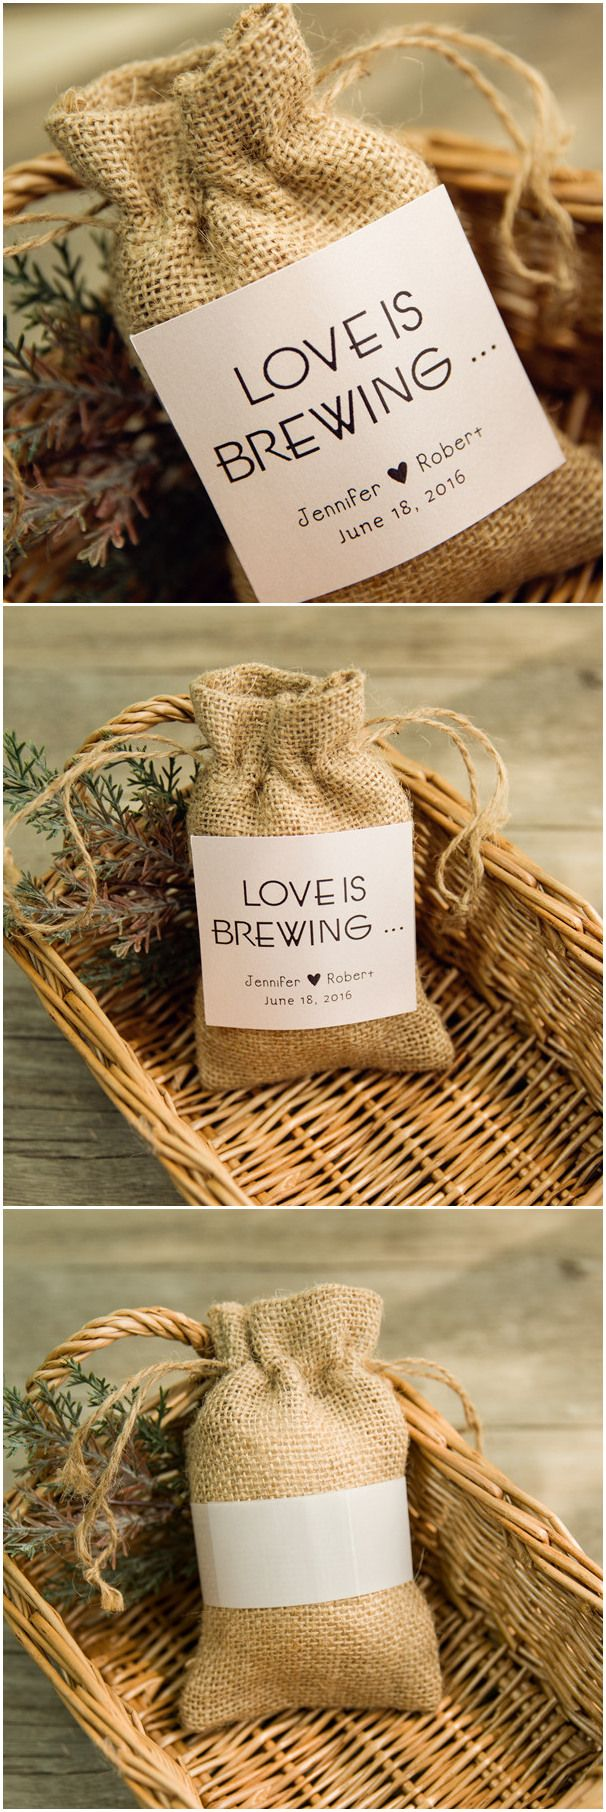 inexpensive wedding favors wedding favor ideas If you re looking for wedding favor ideas for your rustic themed wedding this